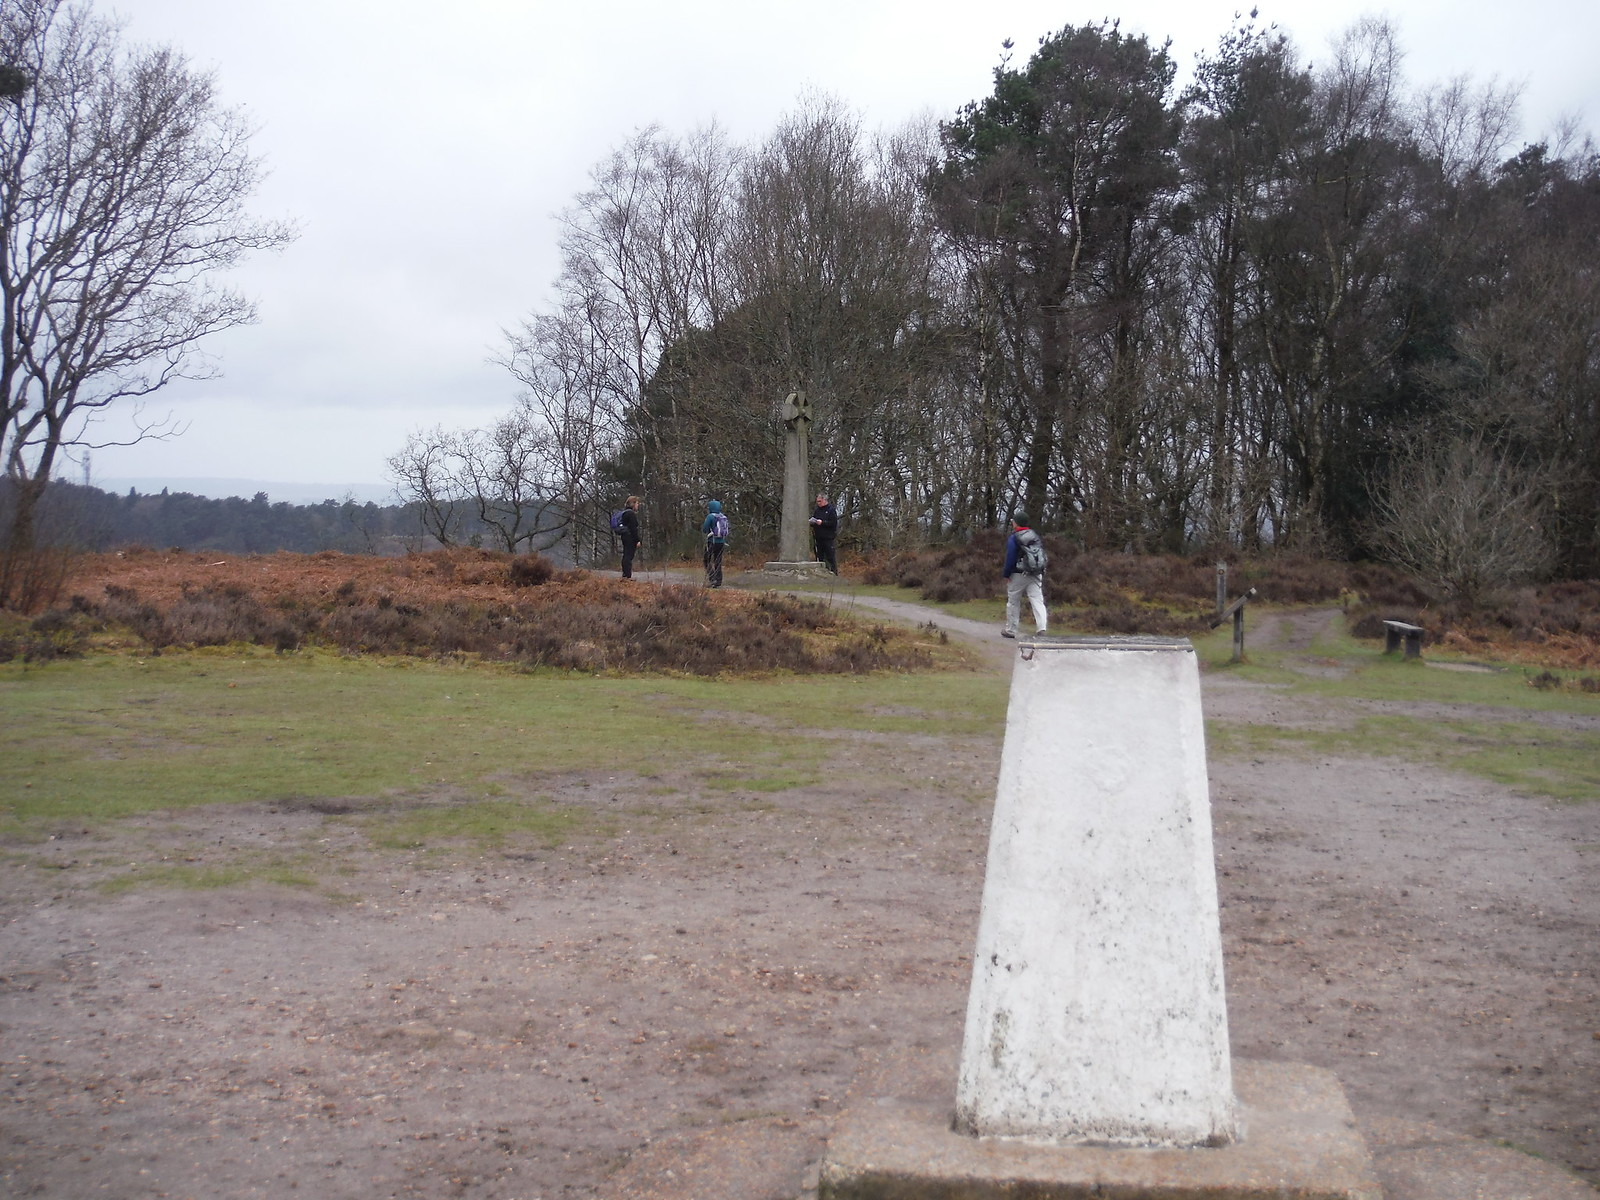 Gibbet Hill, Trigpoint and Celtic Cross SWC Walk 144 Haslemere to Farnham